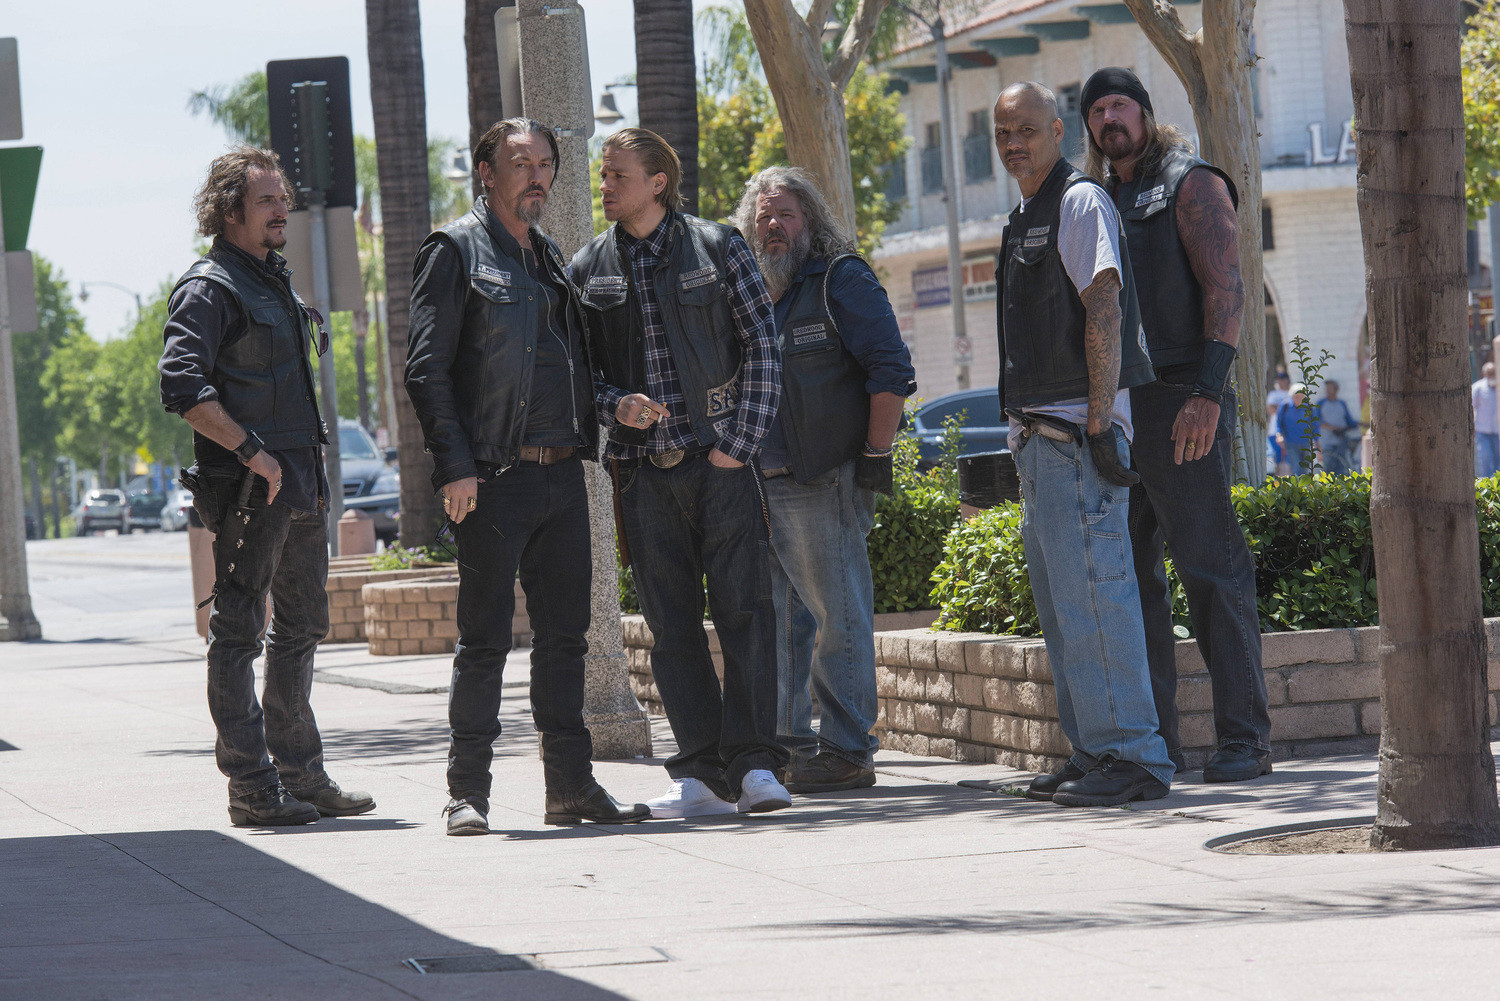 sons of anarchy season 7 episode 1 free download